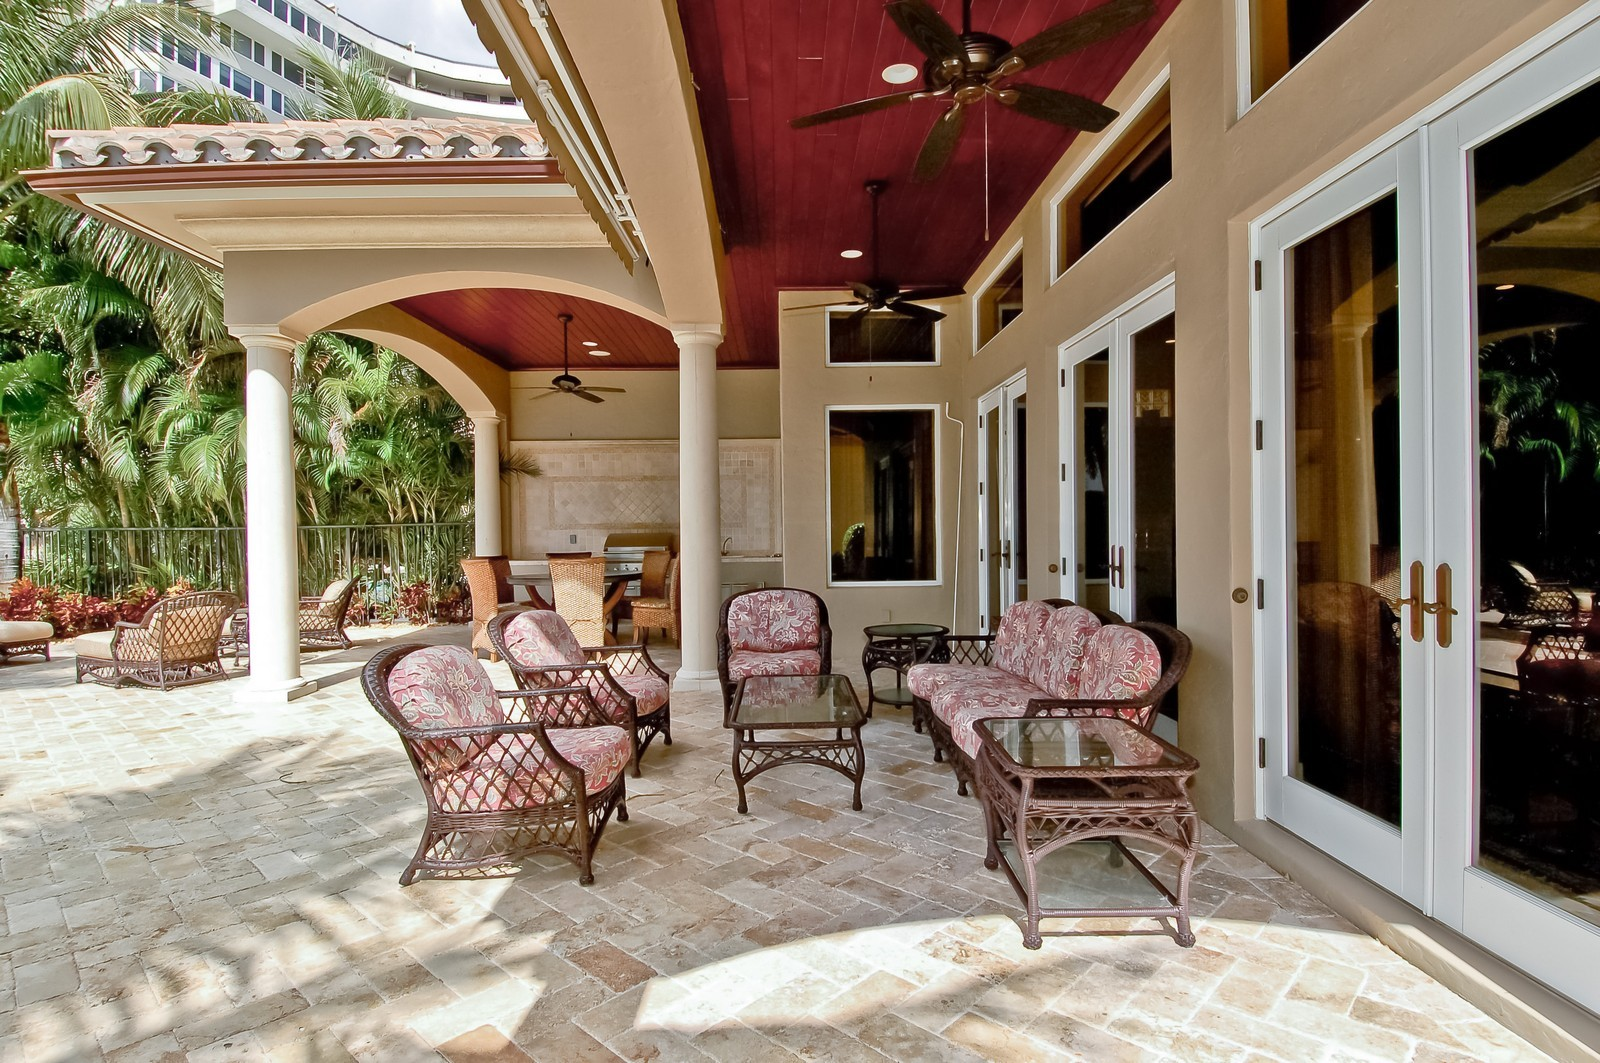 Real Estate Photography - 4022 S Ocean Blvd, Highland Beach, FL, 33487 - Patio